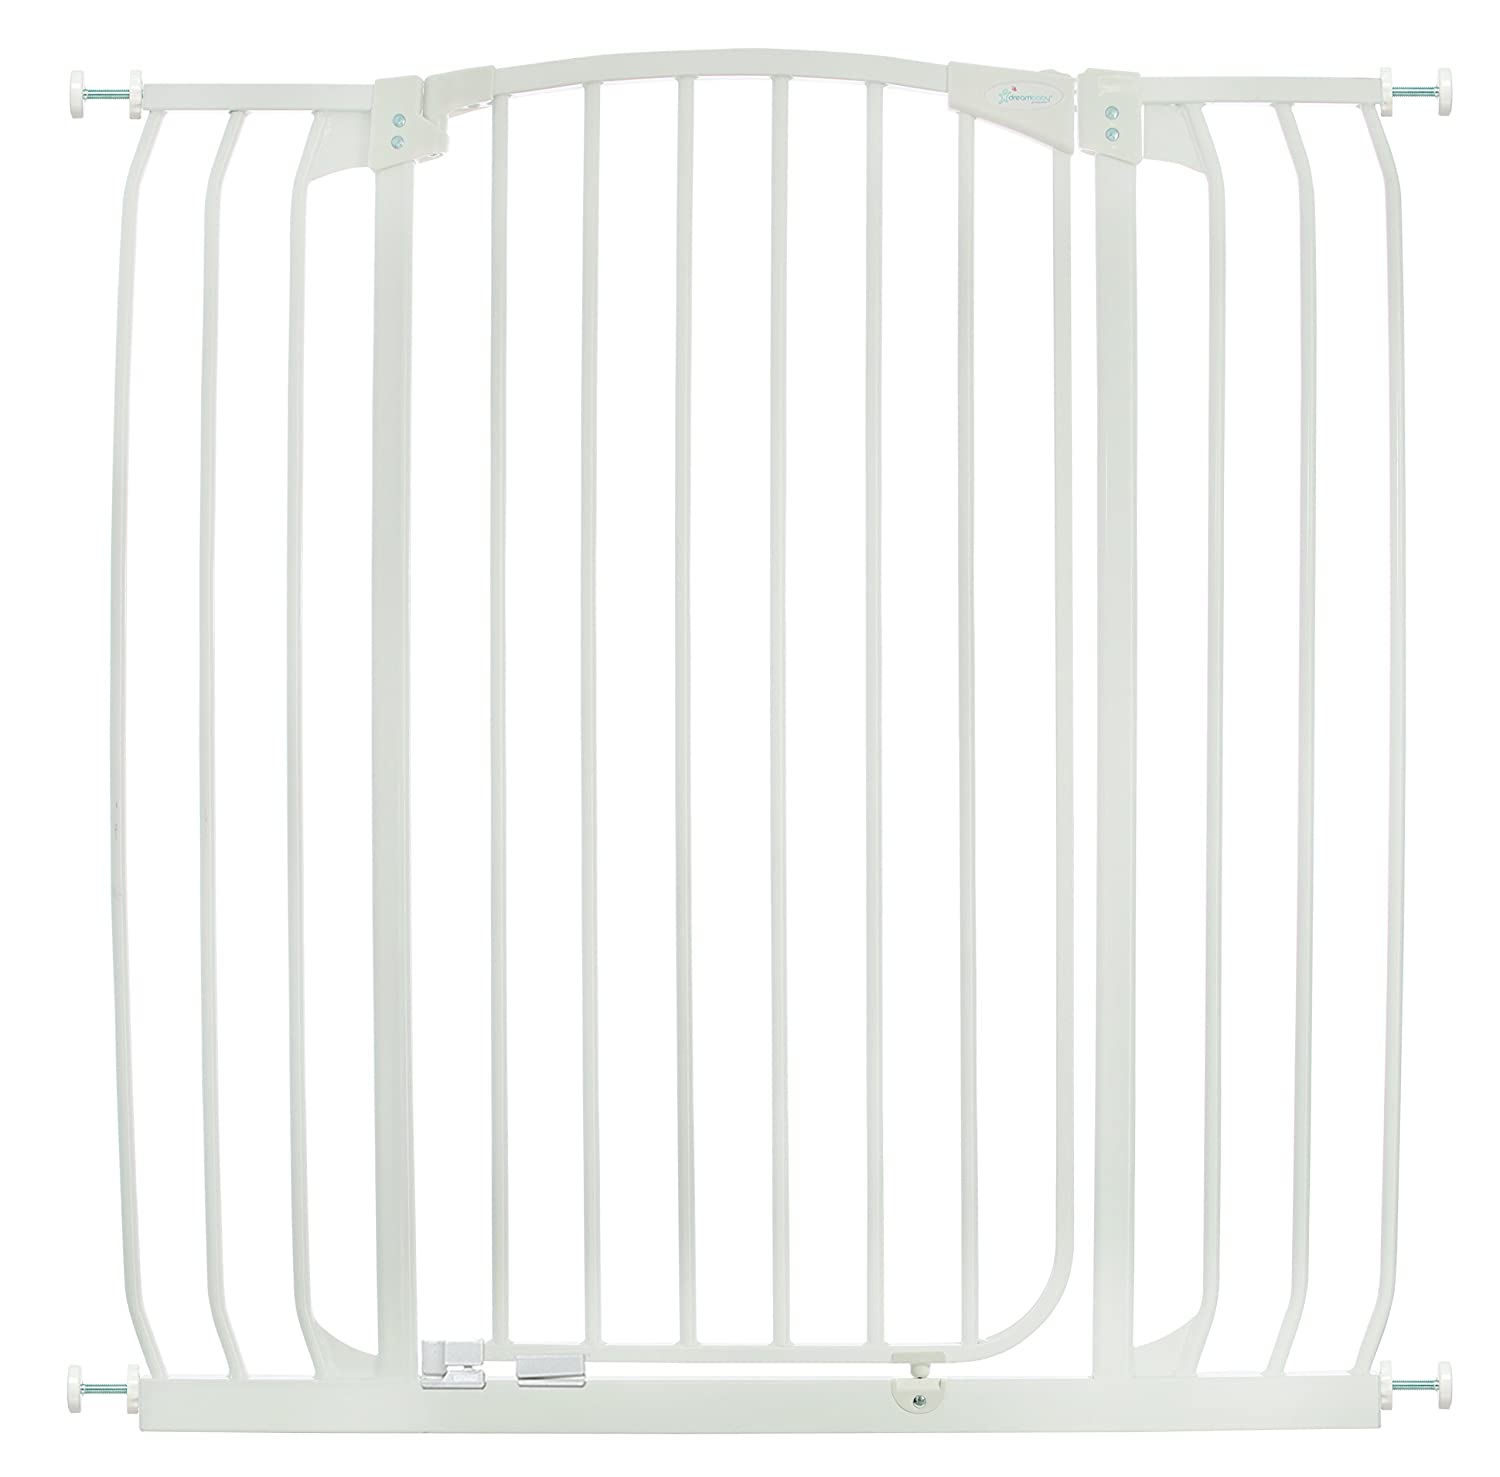 低価格 Dreambaby Hallway Extra Tall Swing Closed Closed by Hallway Security Gate, White by Dreambaby [並行輸入品] B001L67EQA, DS KATOU:b8db15ba --- a0267596.xsph.ru